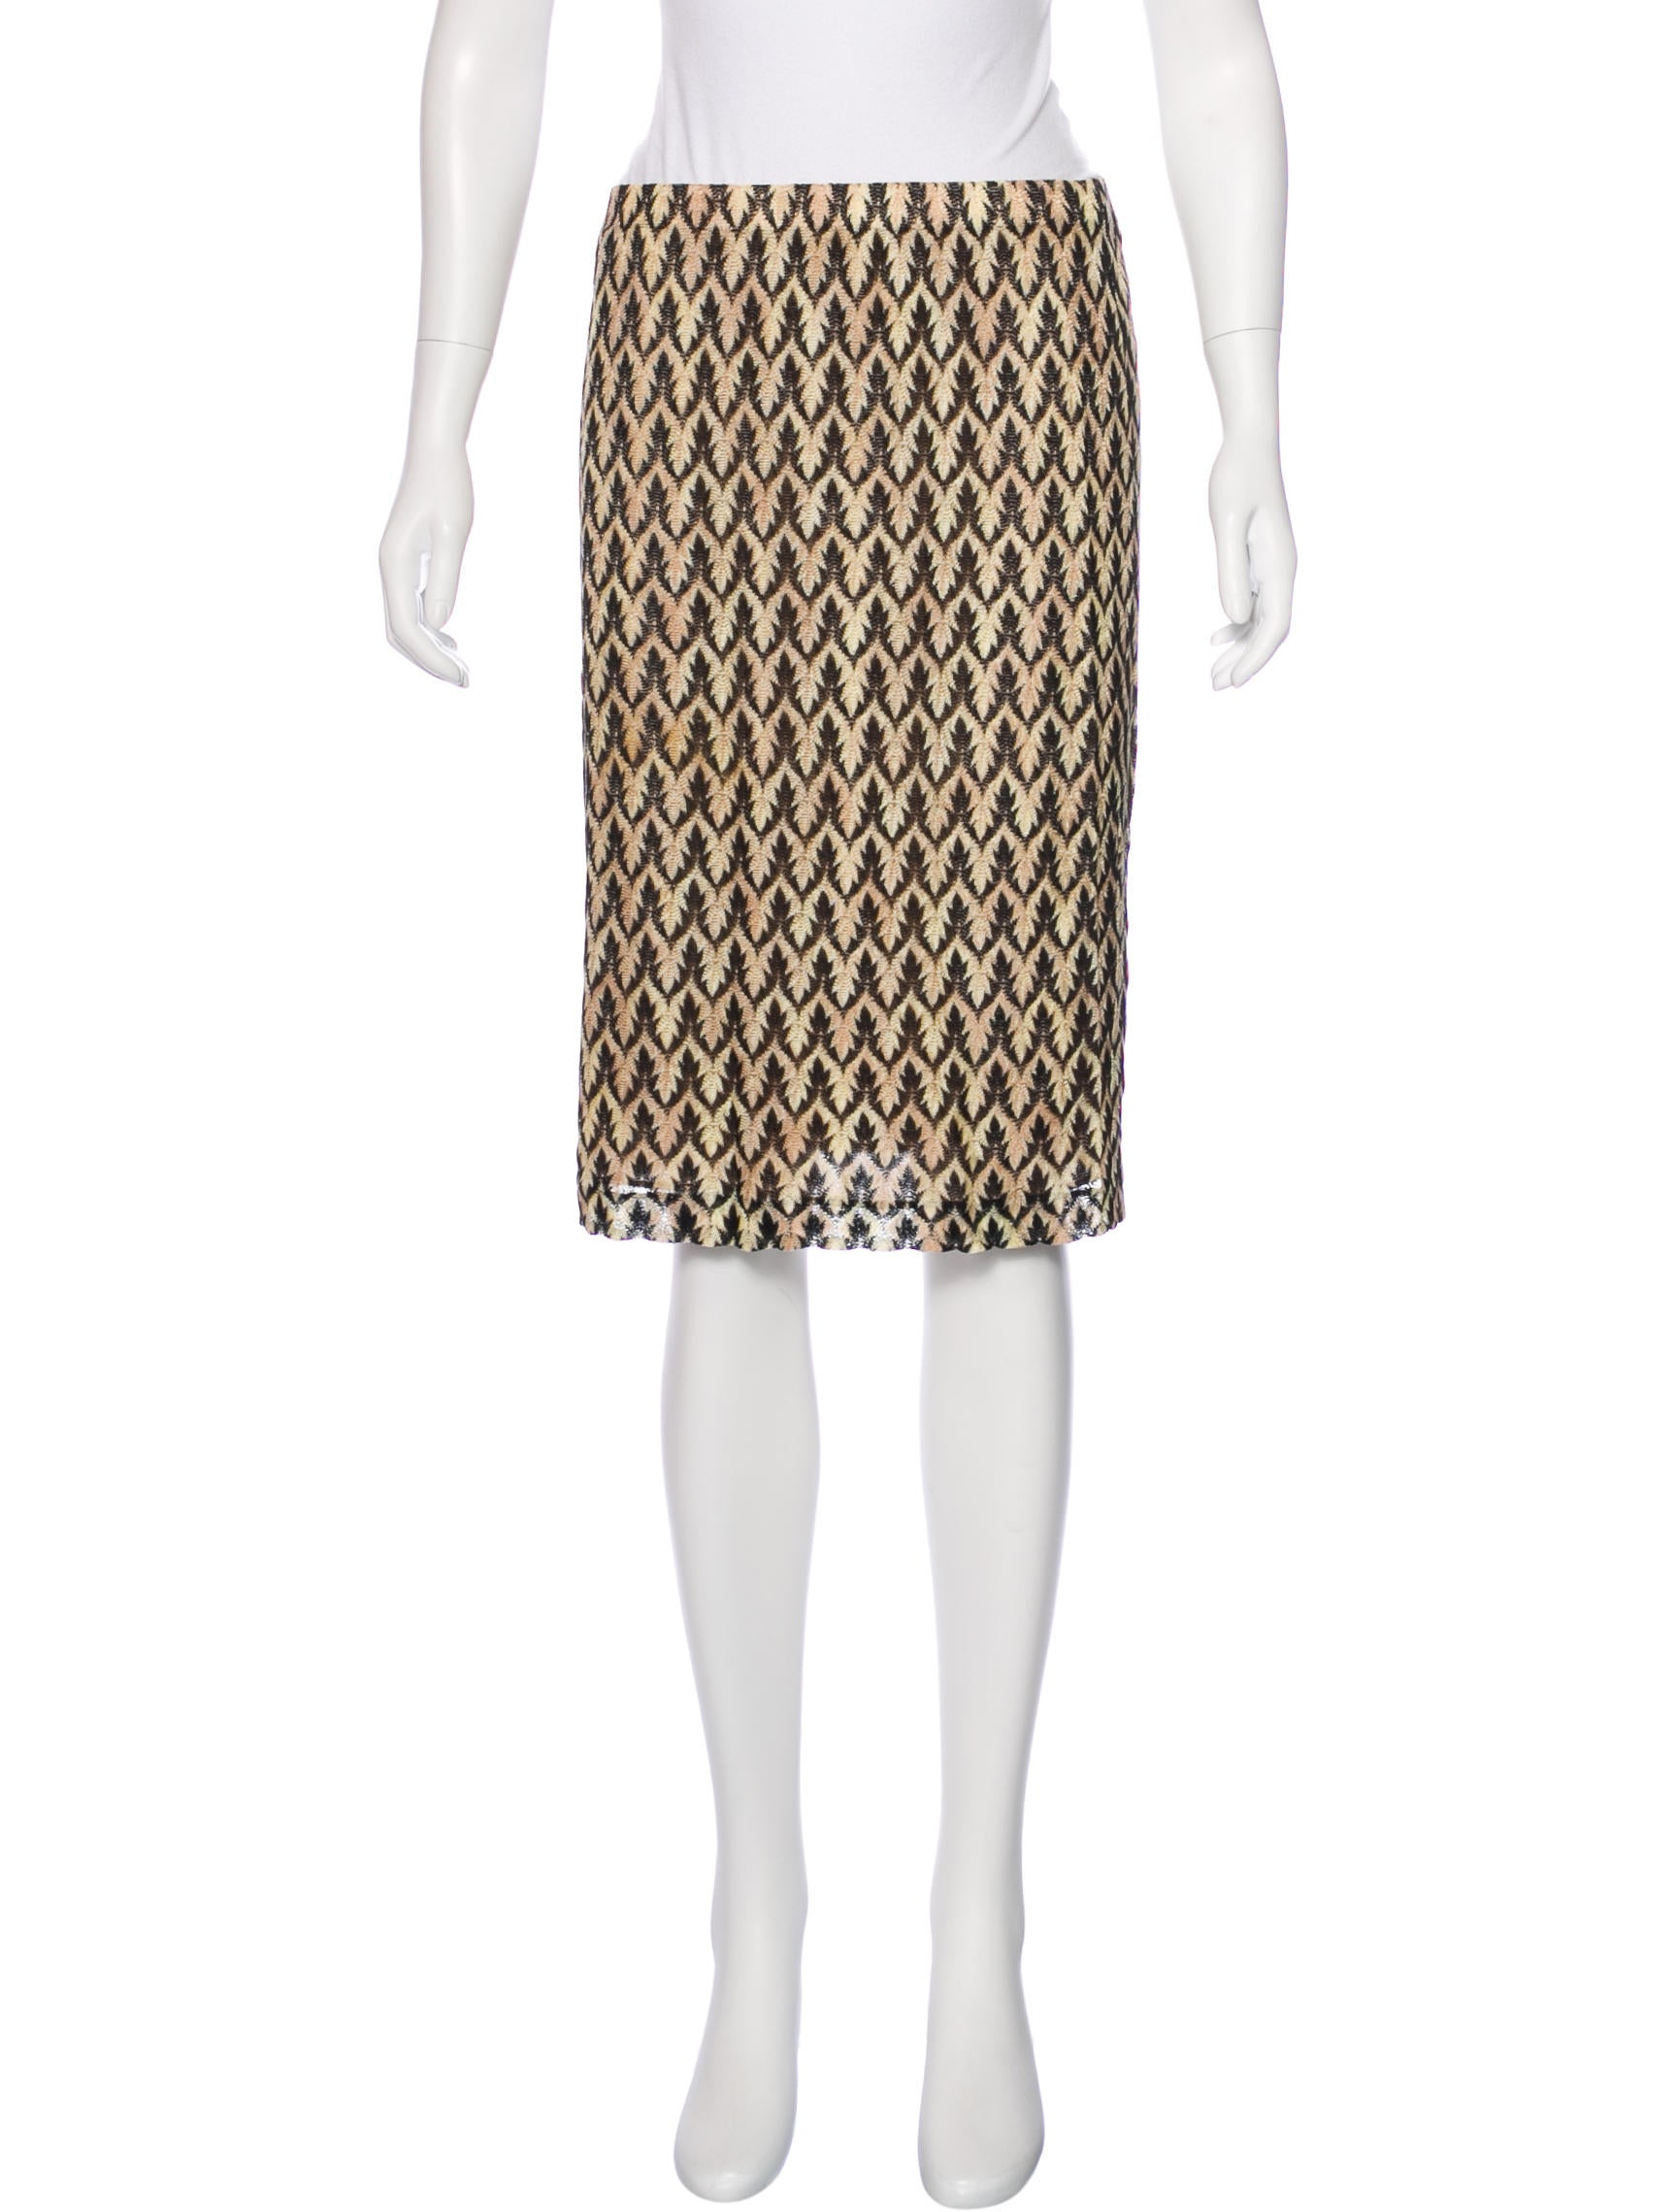 Missoni Knit Pencil Skirt - Clothing - MIS41999 | The RealReal